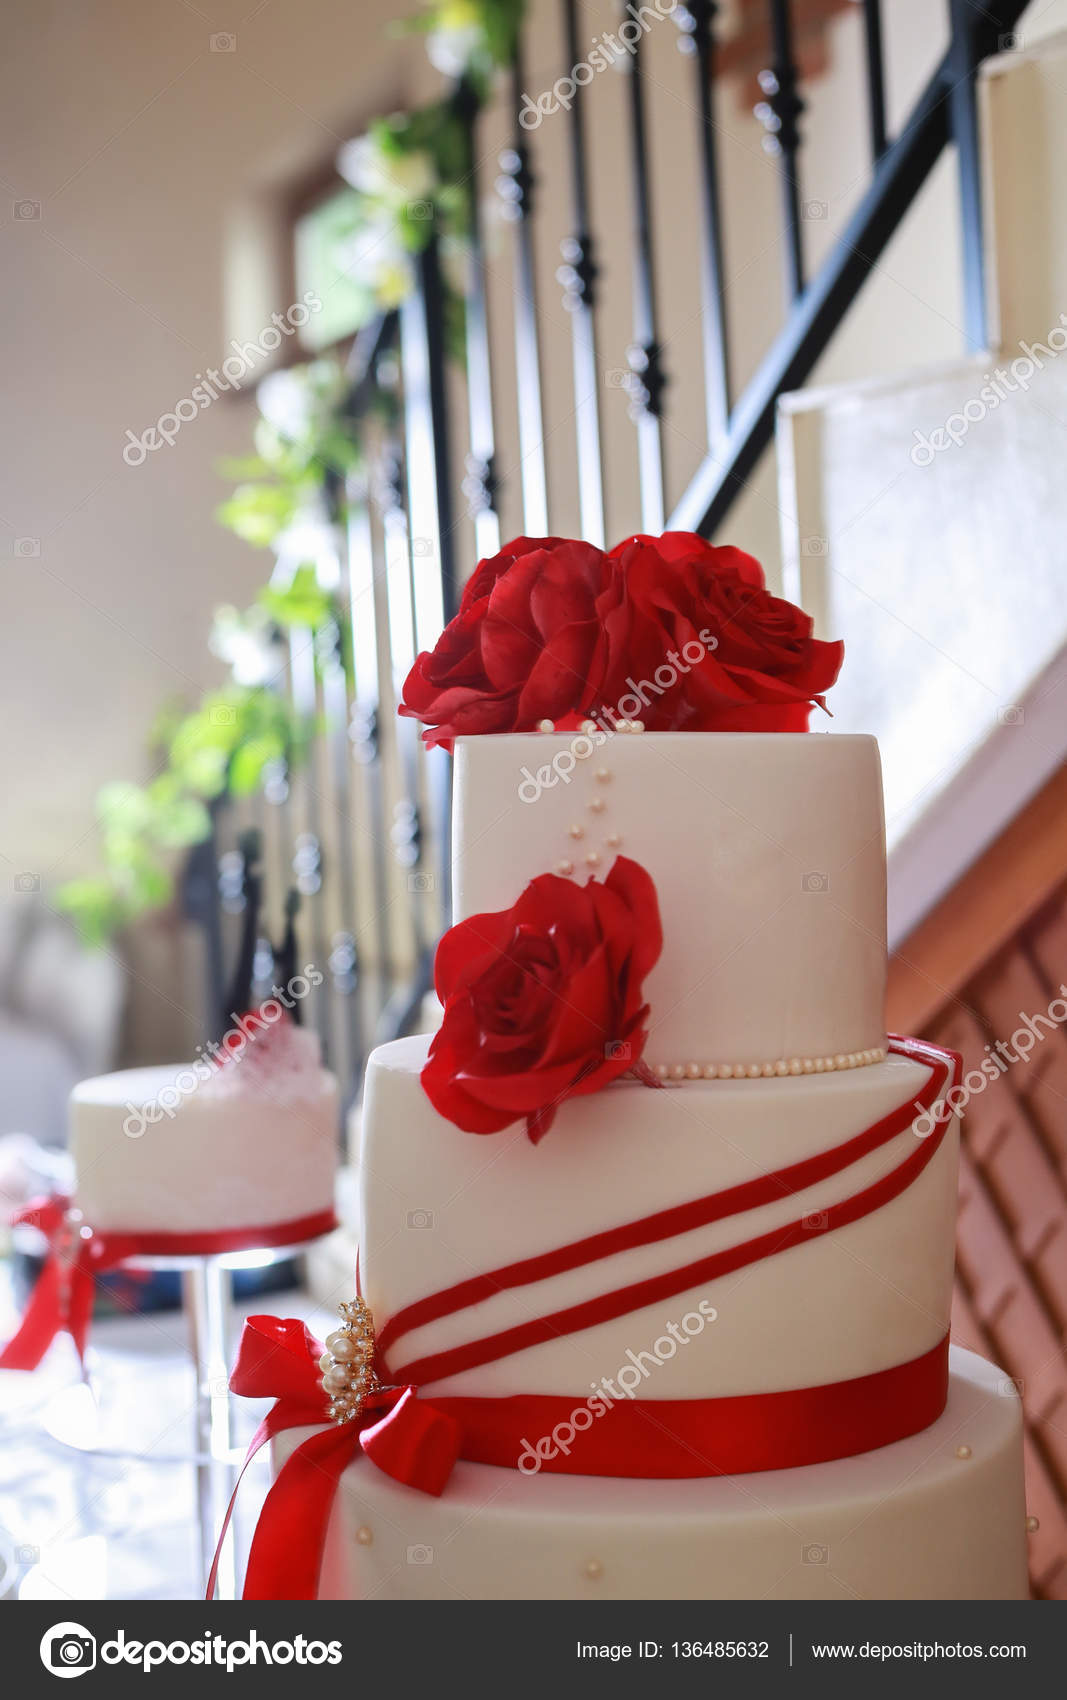 White 4 Tier Wedding Cake Detail With Red Edible Marzipan Flower